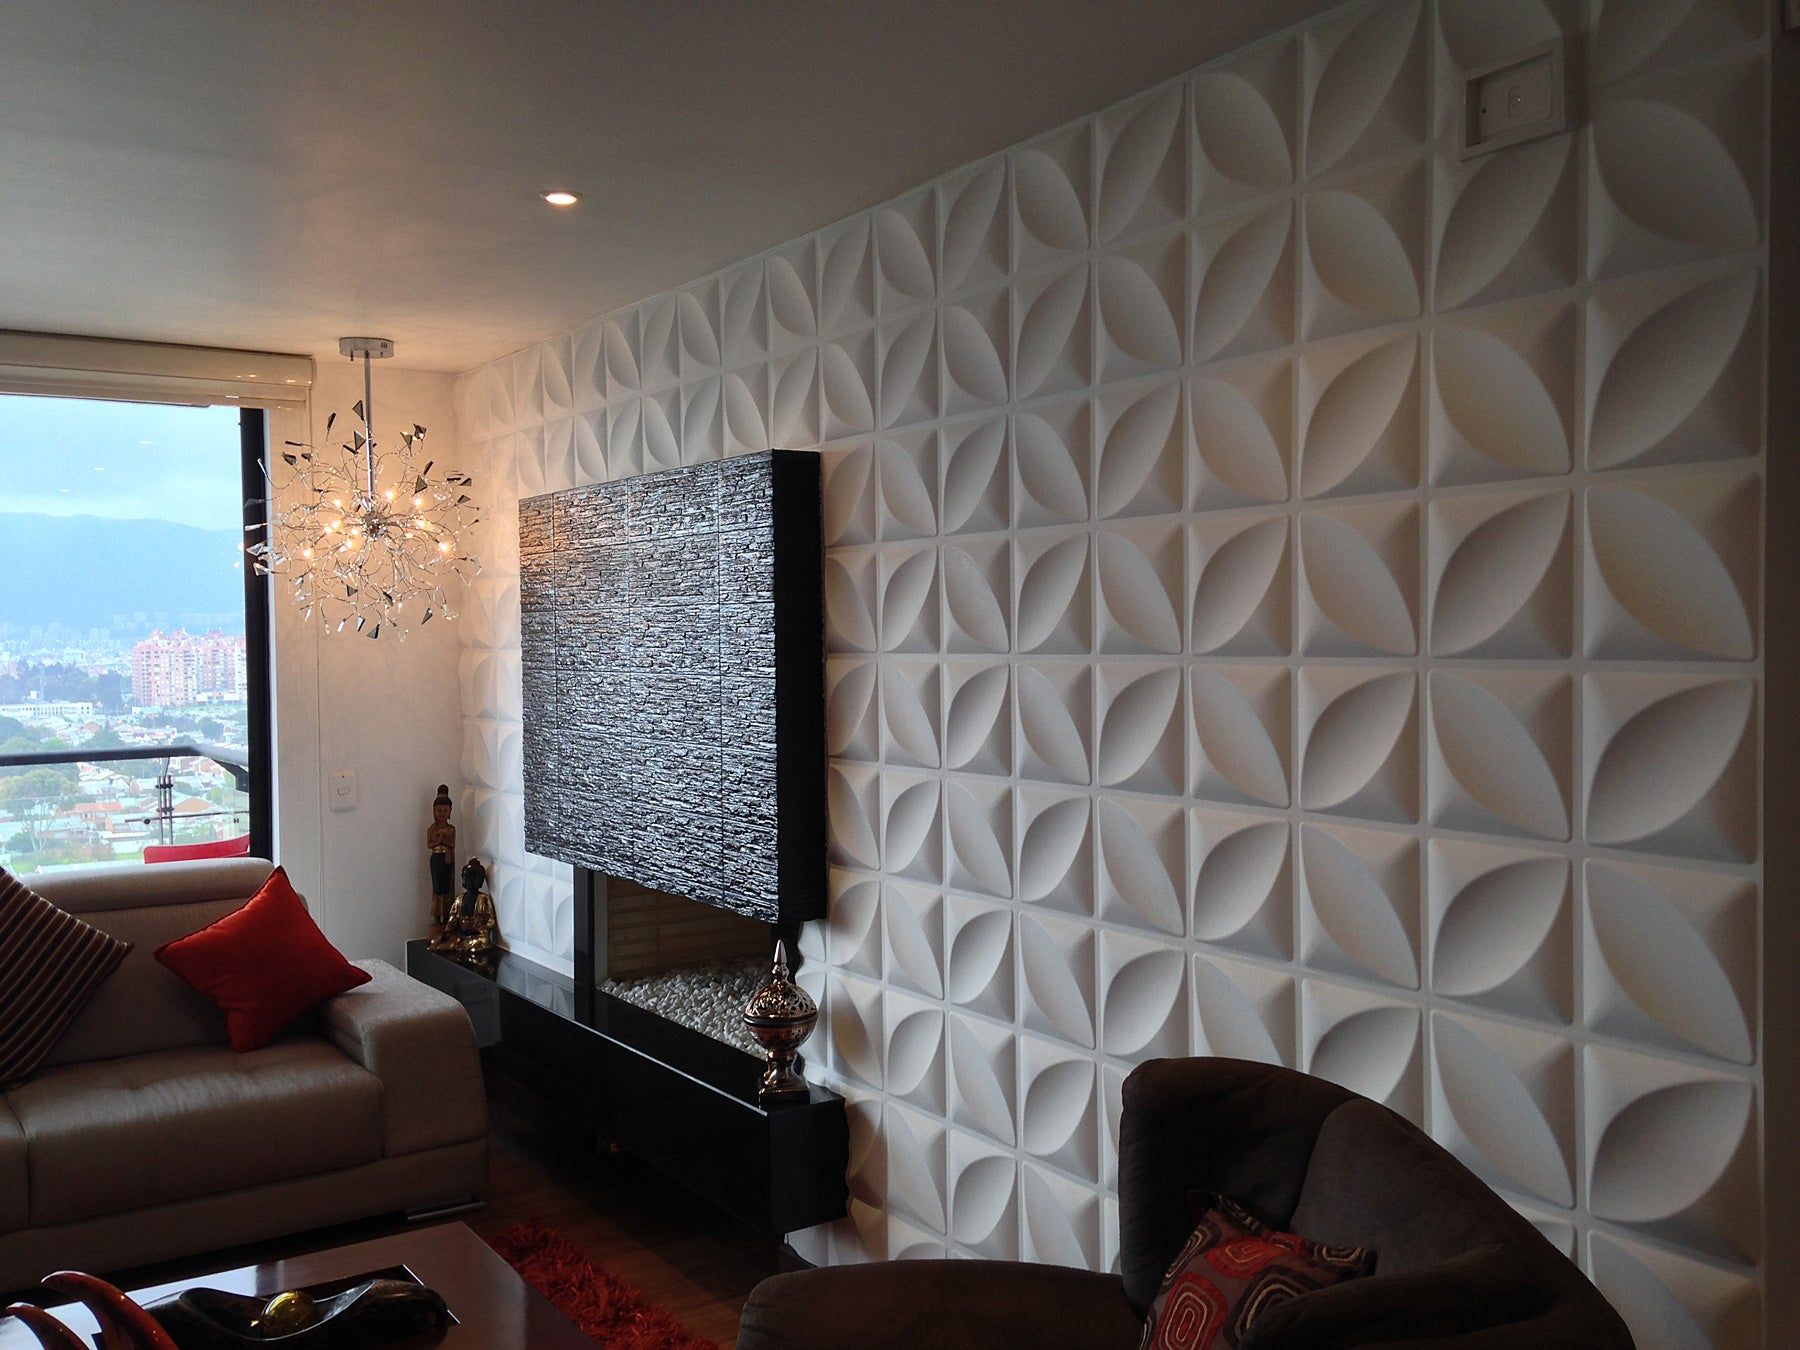 Superbe Chrysalis Wall Flats U2013 3D Wall Panels